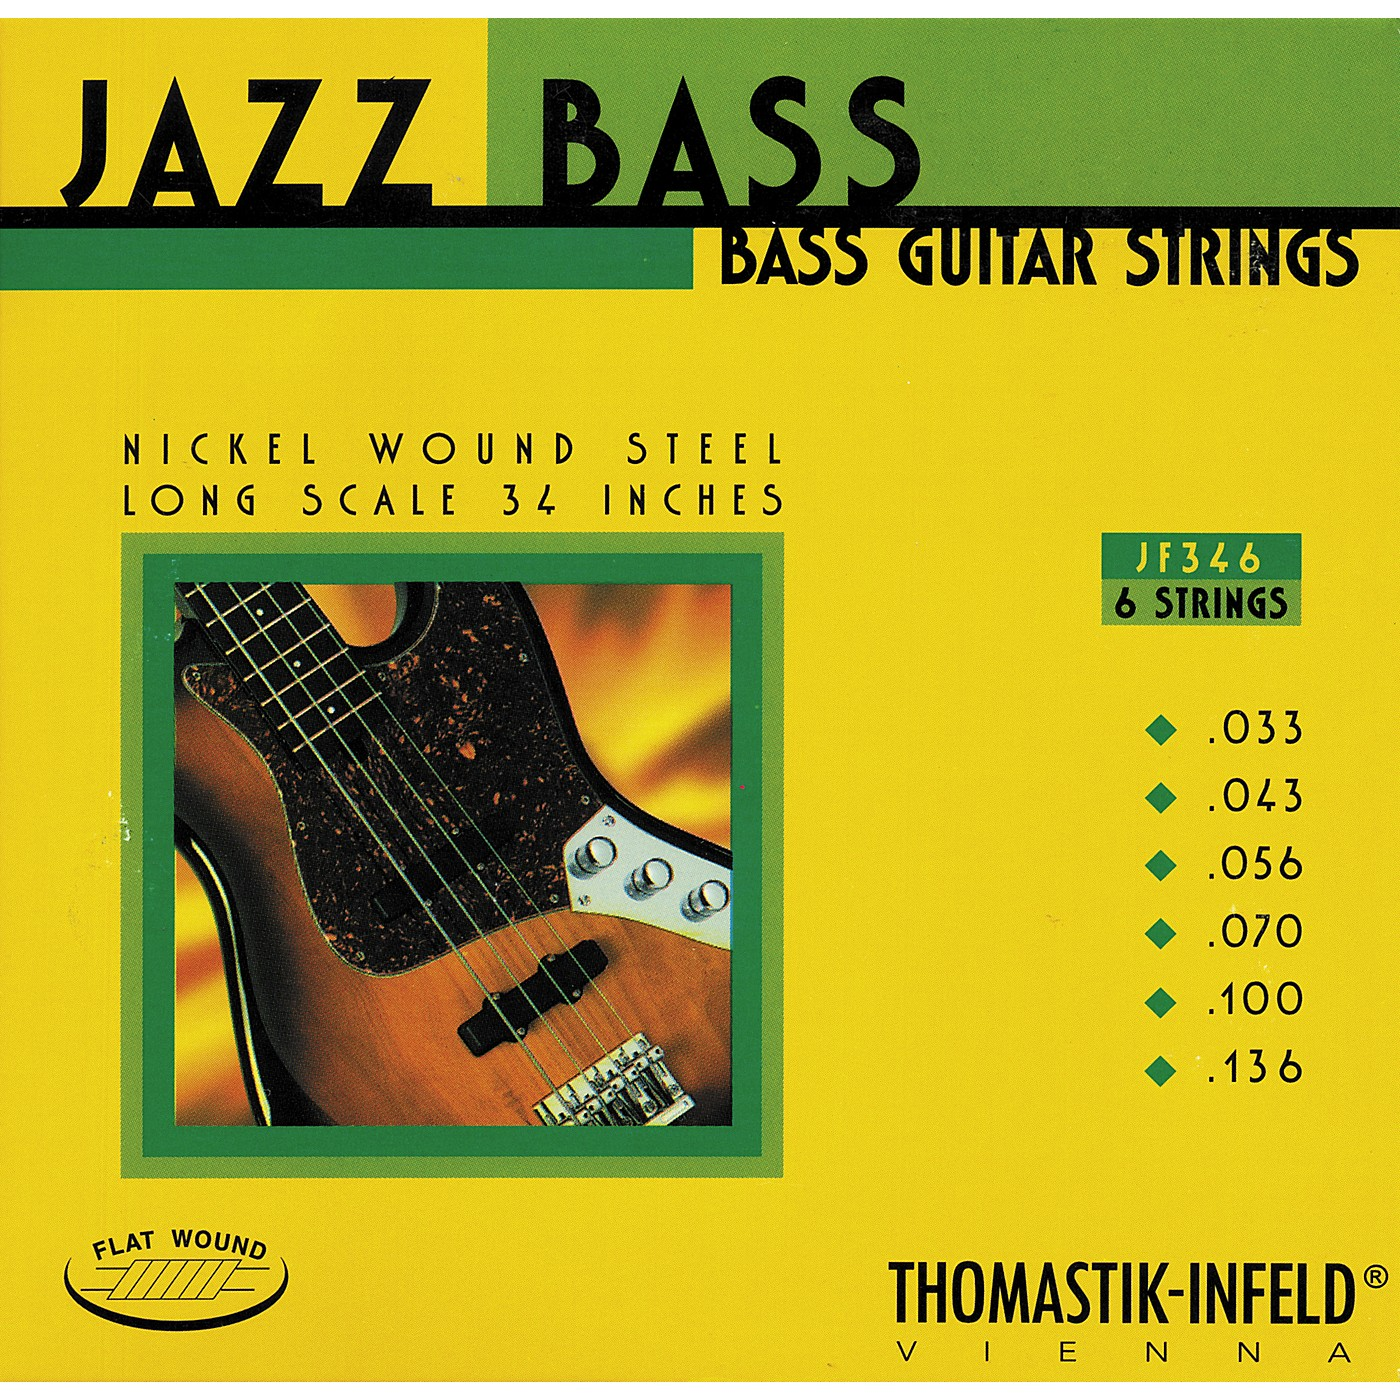 Thomastik JF346 Flatwound Scale 6-String Jazz Bass Strings thumbnail